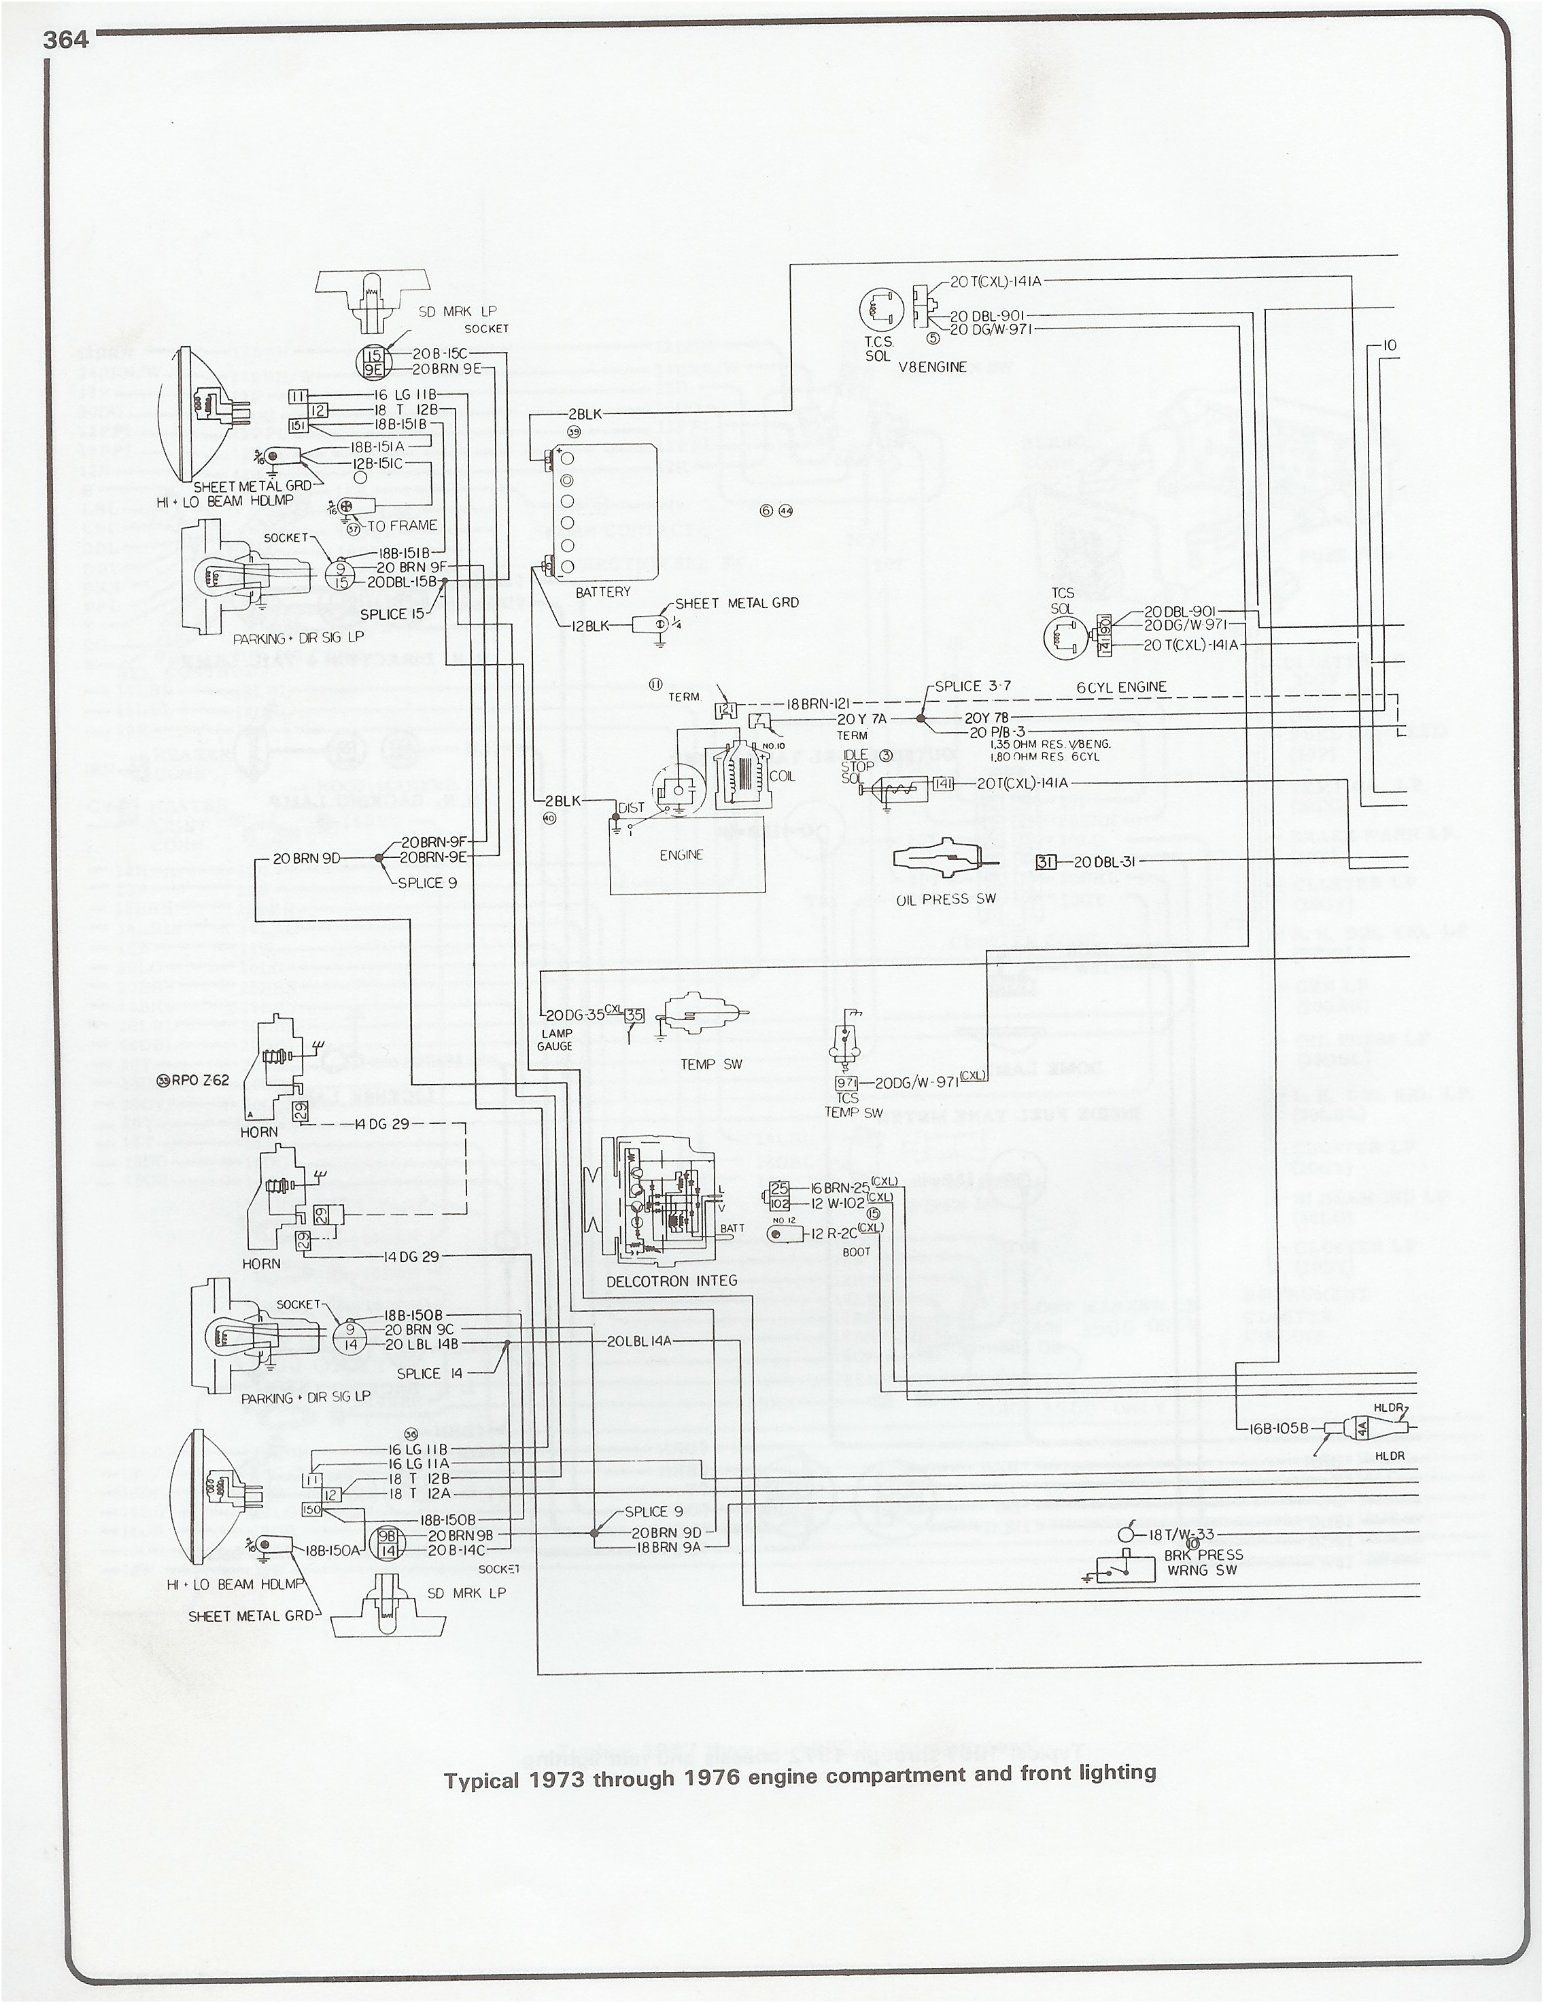 wiring diagram 1973 1976 chevy pickup chevy wiring diagram rh pinterest com